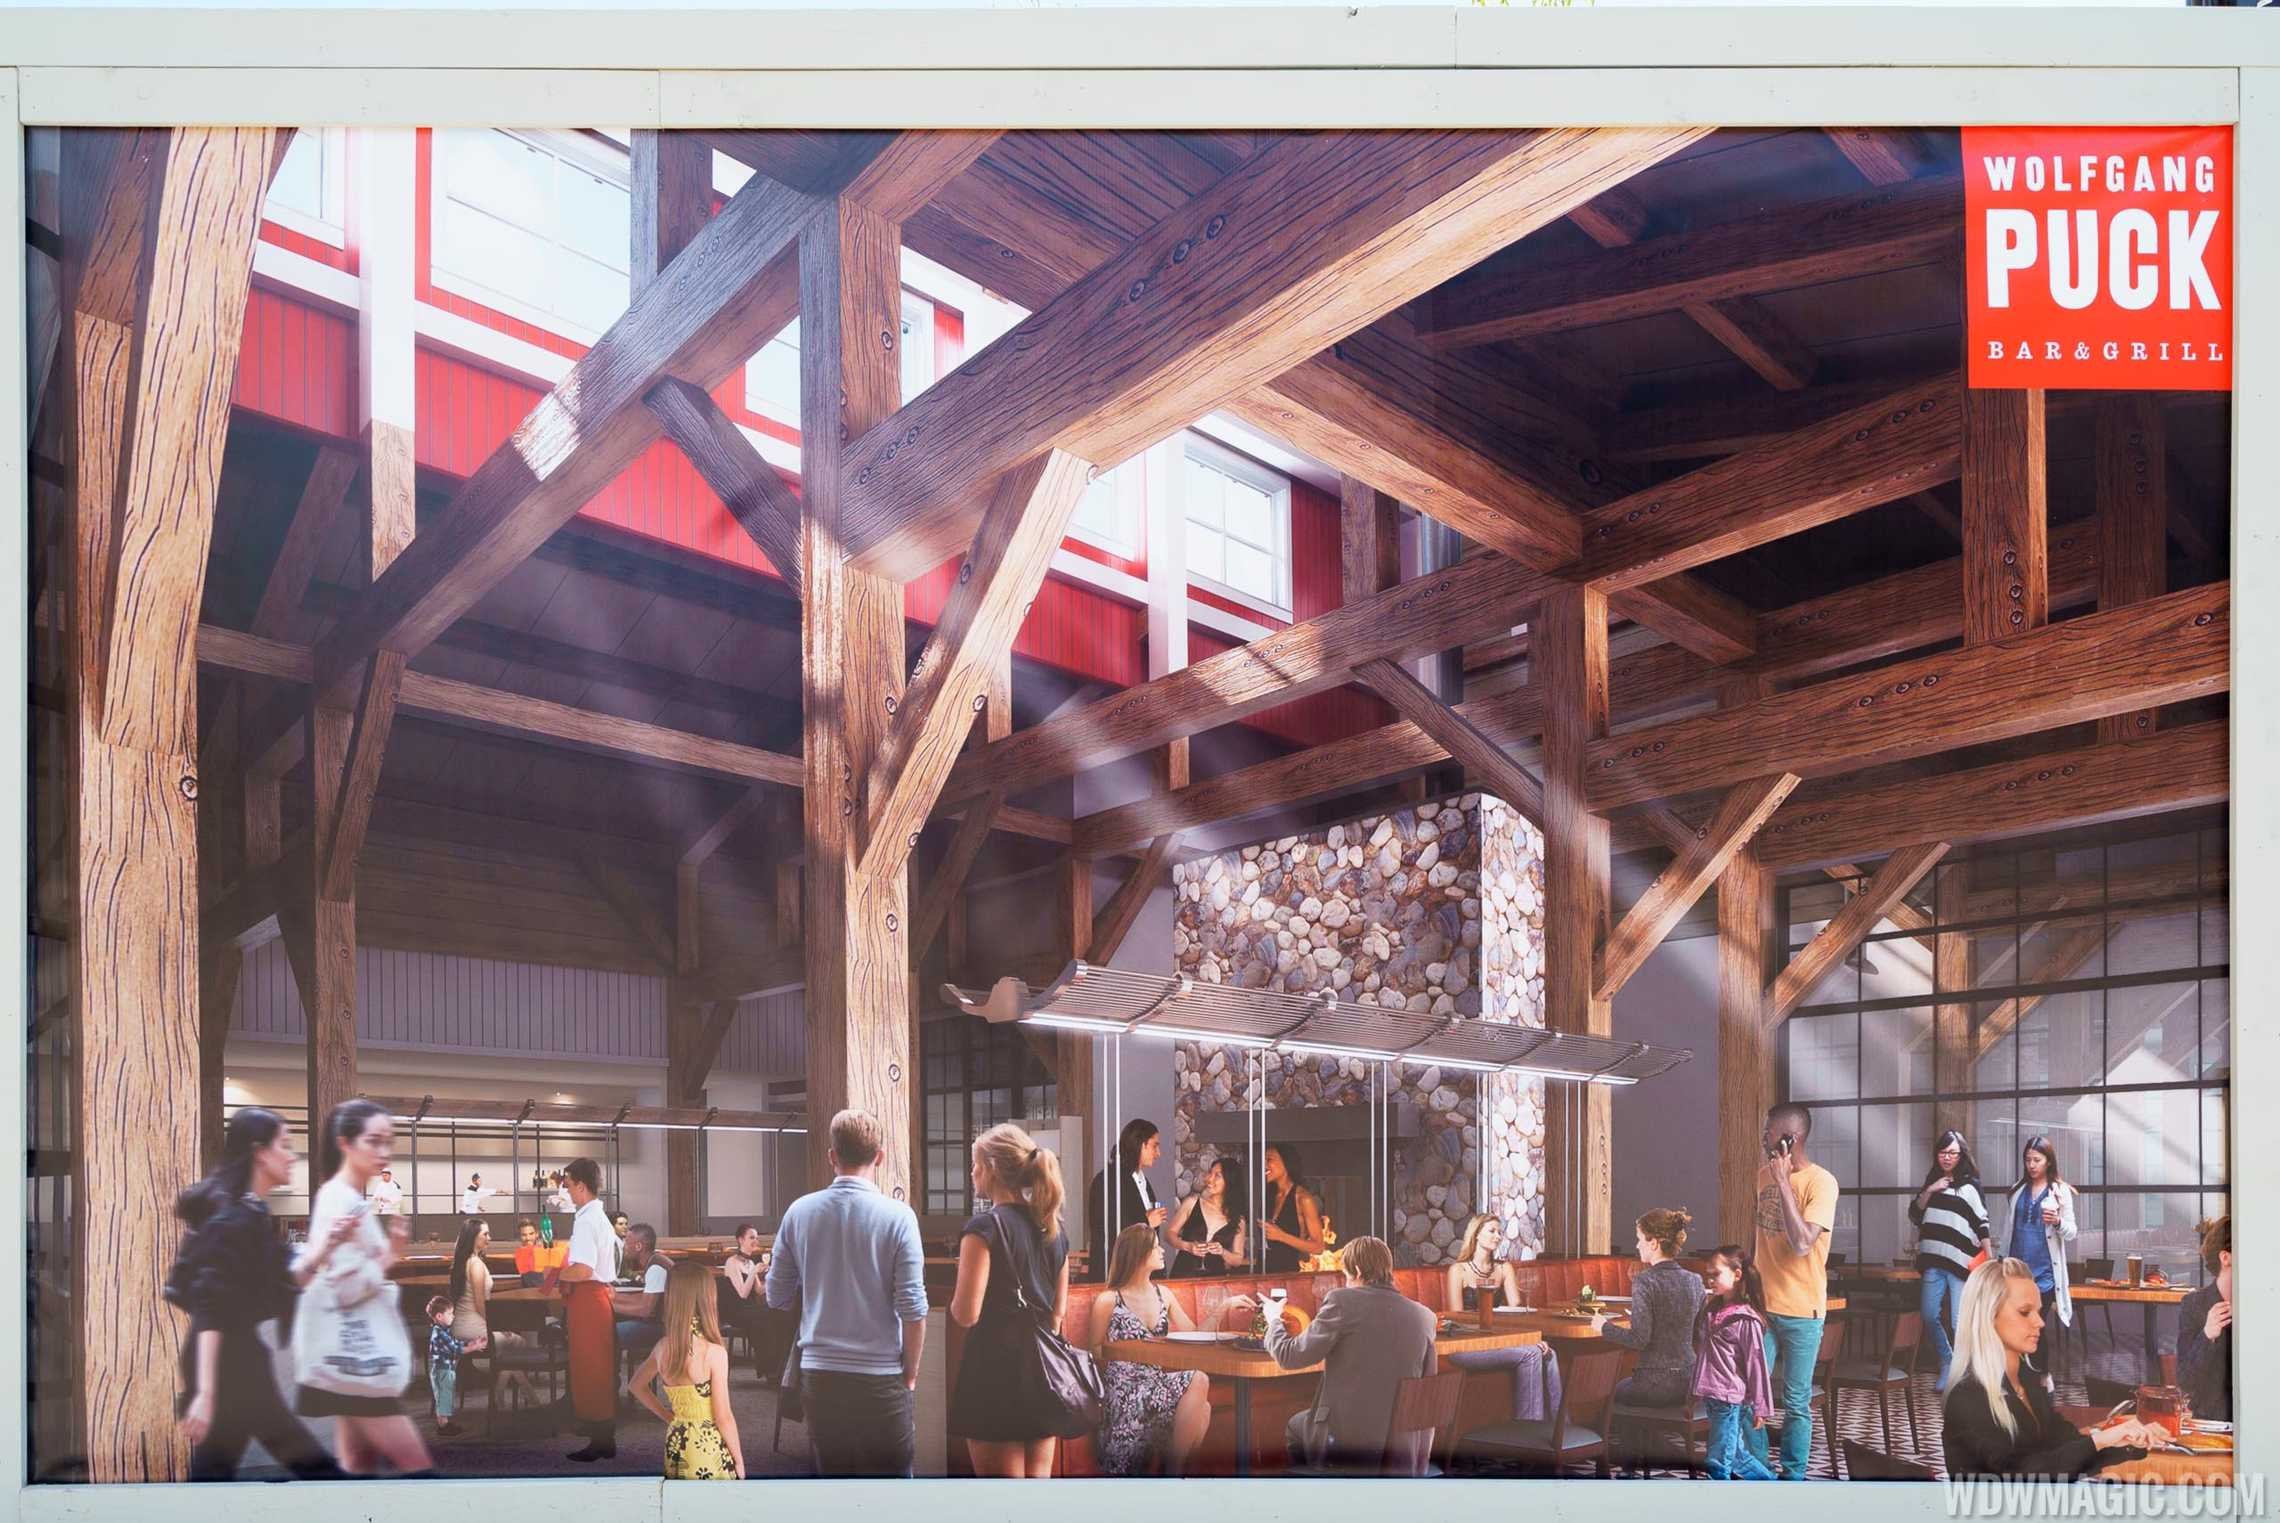 Wolfgang Puck Bar and Grill concept art - Interior